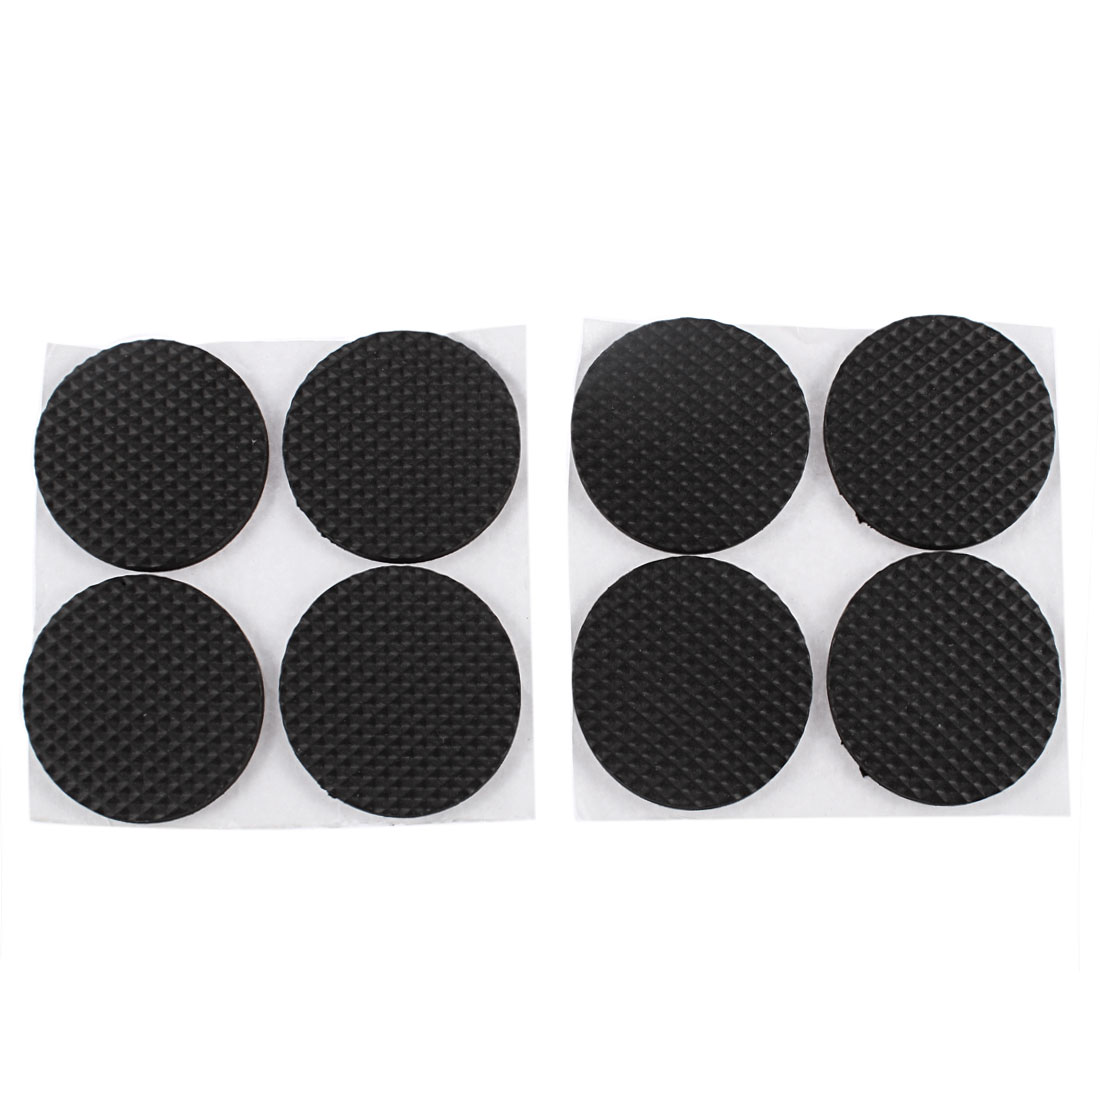 Table Chair Furniture Round Shaped Foot Protector Covers Cushion Pads Black 8pcs